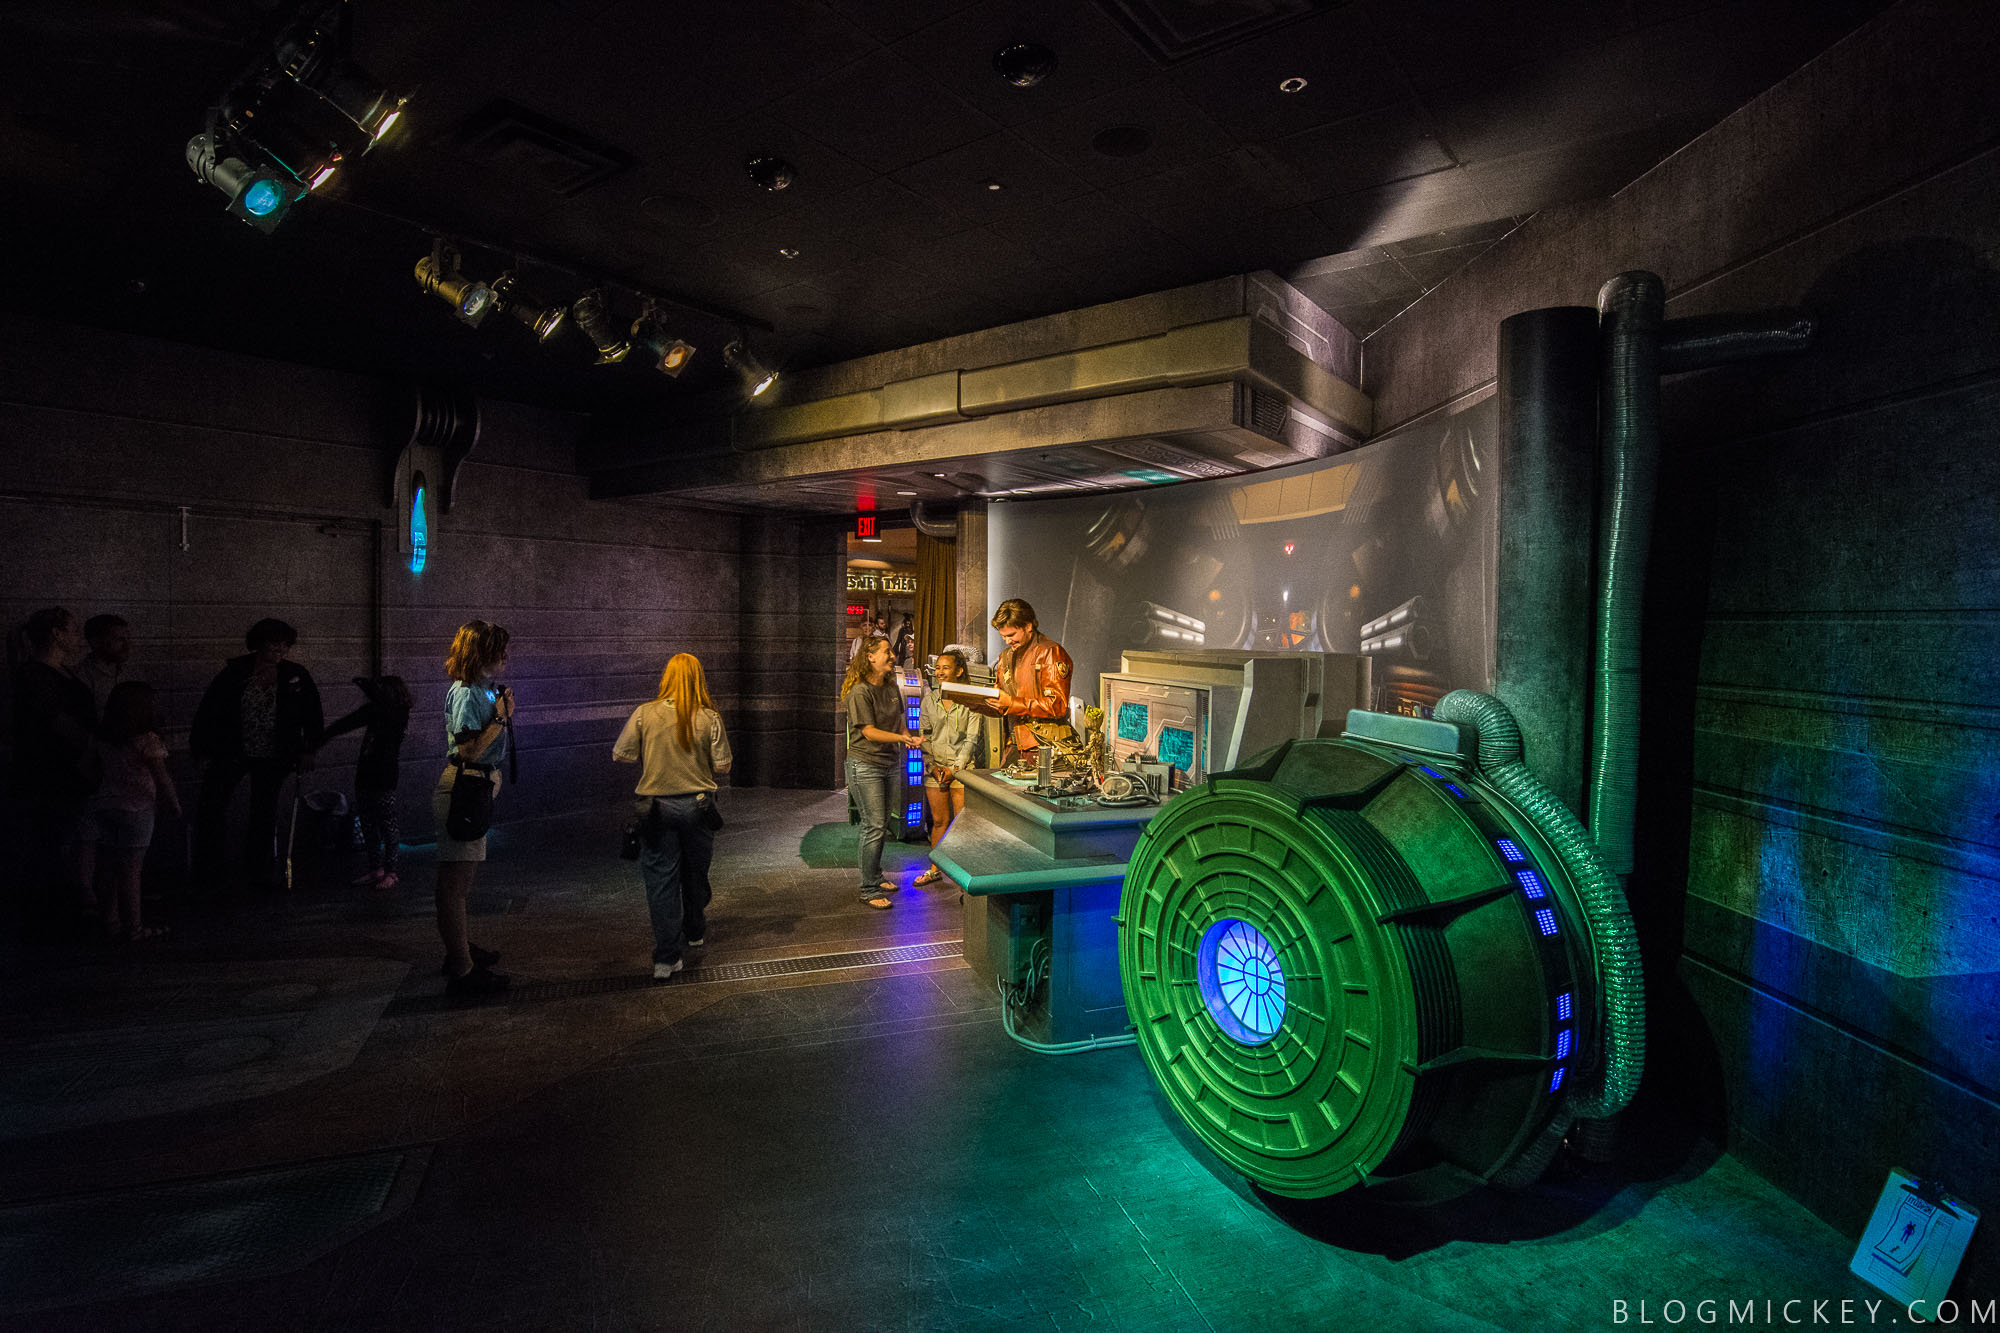 Photos video meet star lord and baby groot at disneys hollywood meet and greet space with star lord and baby groot at hollywood studios m4hsunfo